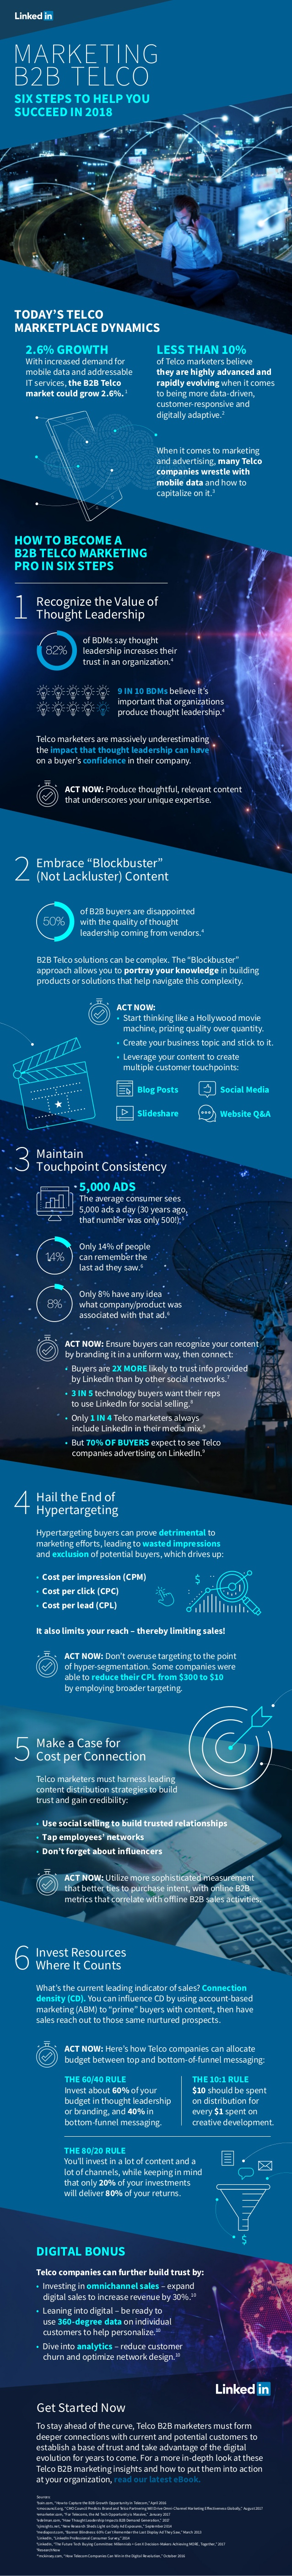 LinkedIn Offers Tips to Help Telco Marketers Succeed in 2018 [Infographic]